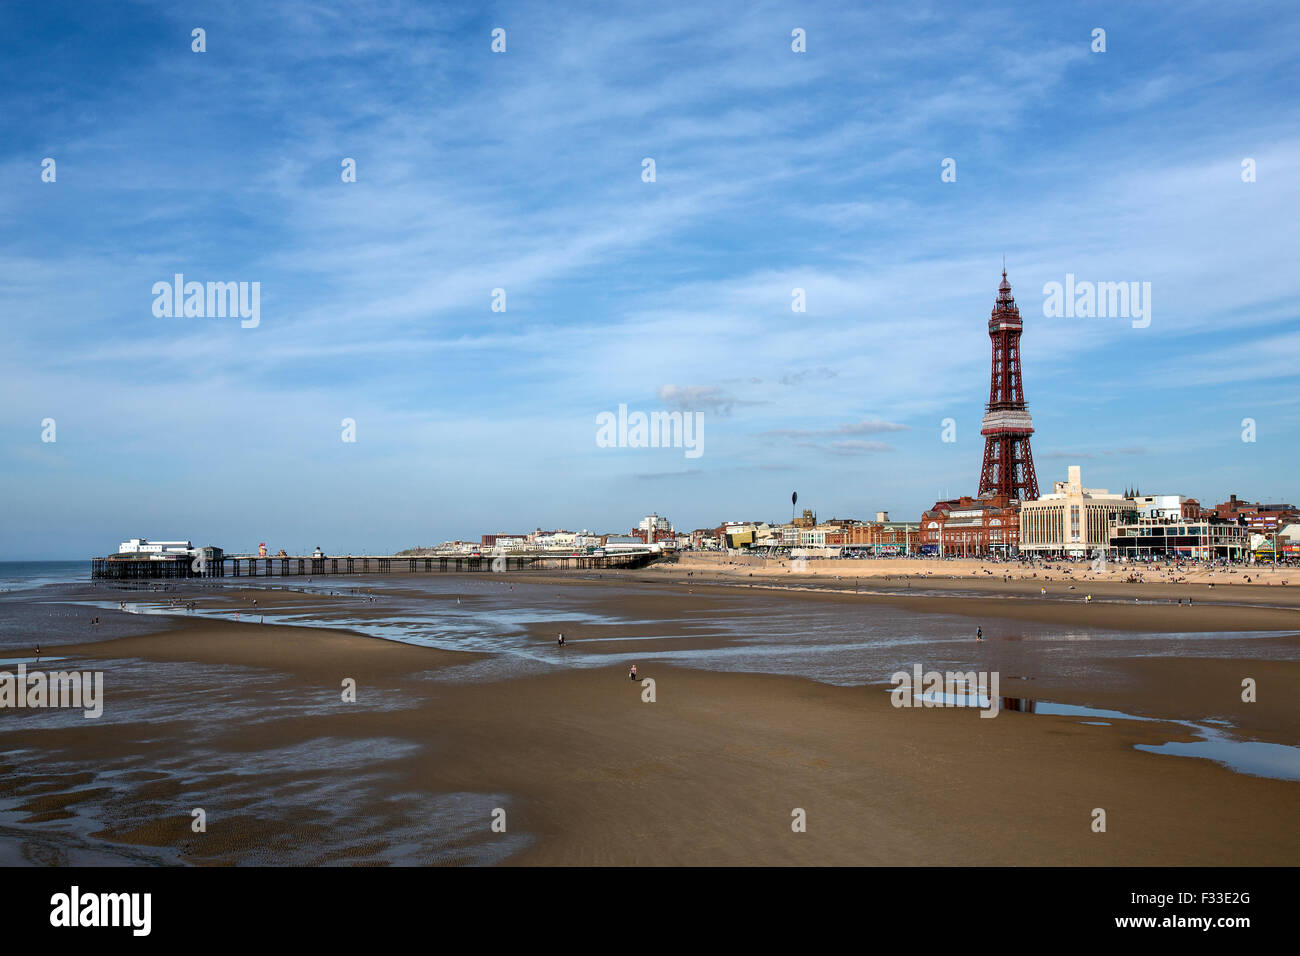 The old North Pier and Blackpool Tower in the seaside resort of Blackpool on the northwest coast of England. - Stock Image